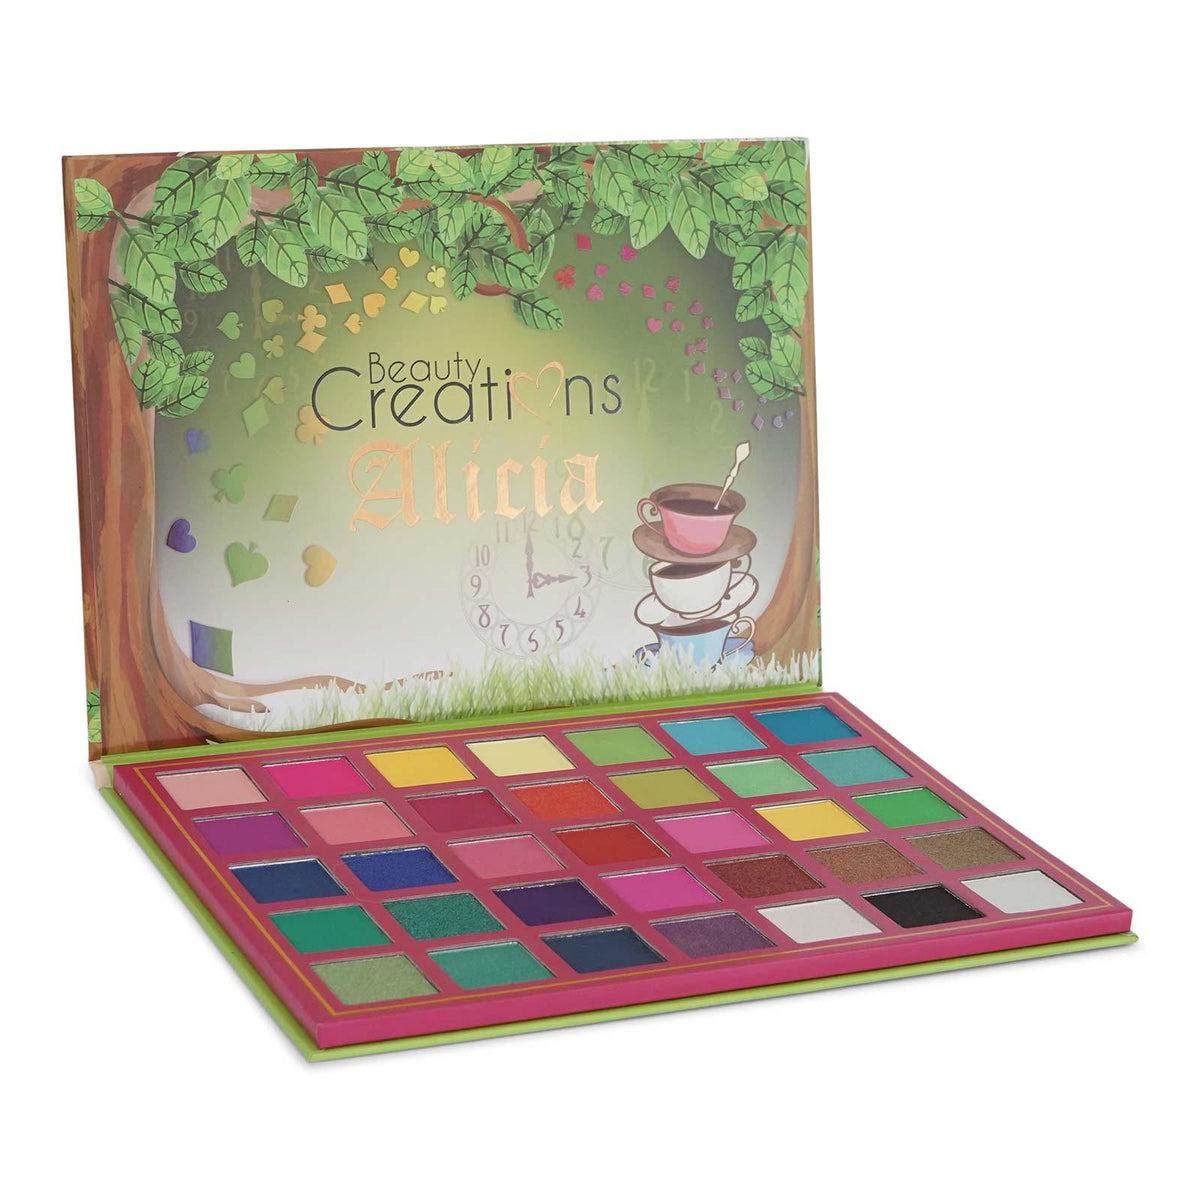 BEAUTY CREATIONS | Alicia Eyeshadow Palette Display Set (35 Colors, 6 ct.)